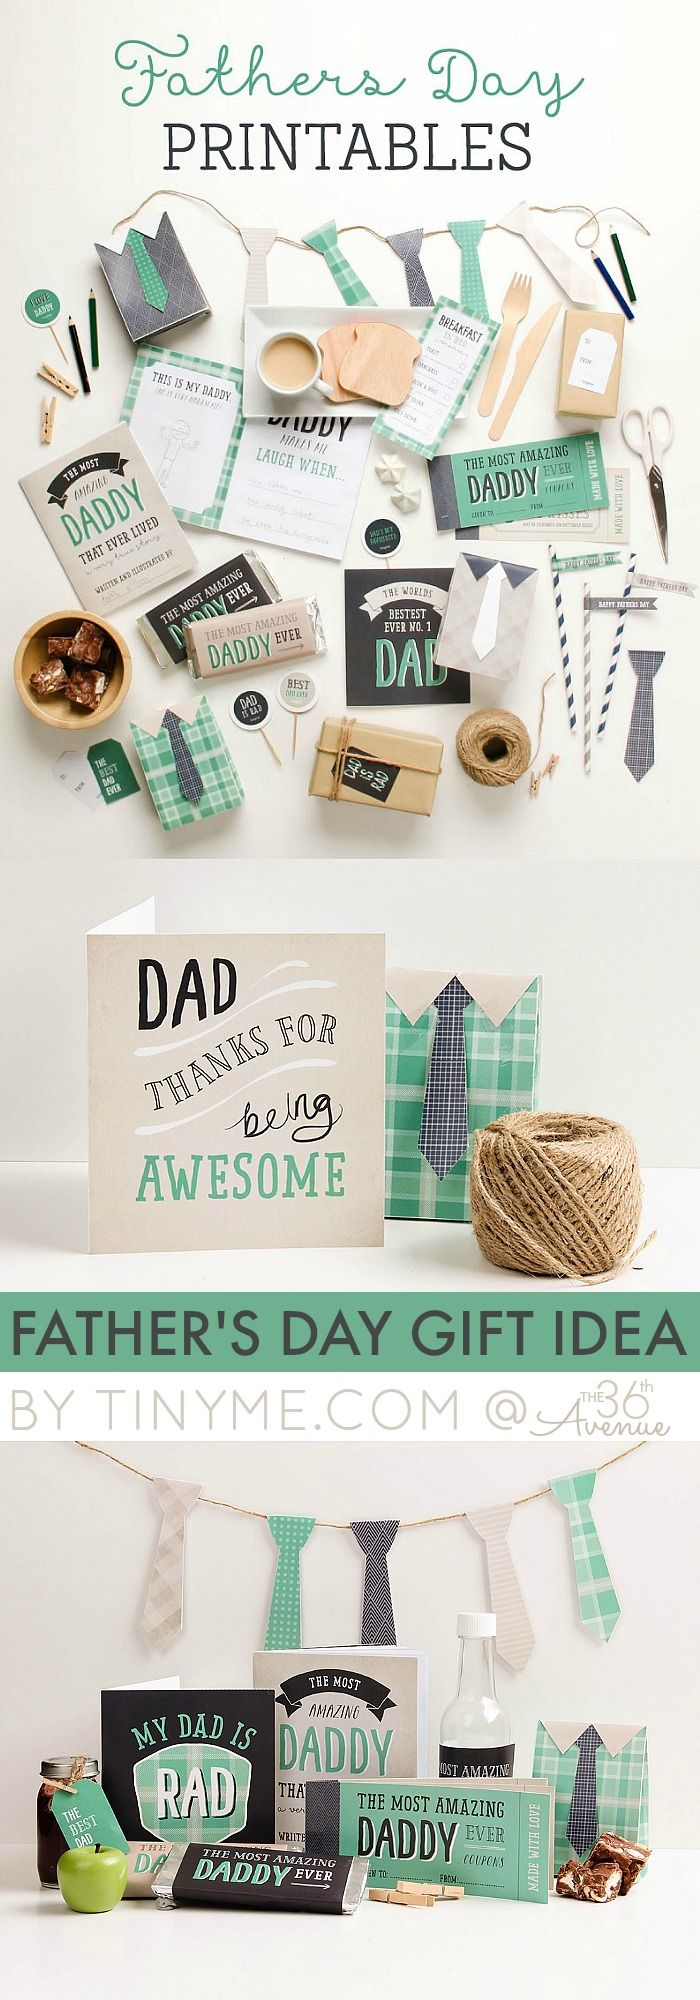 Father's Day Printables and Gift Idea | Best of Pinterest ...